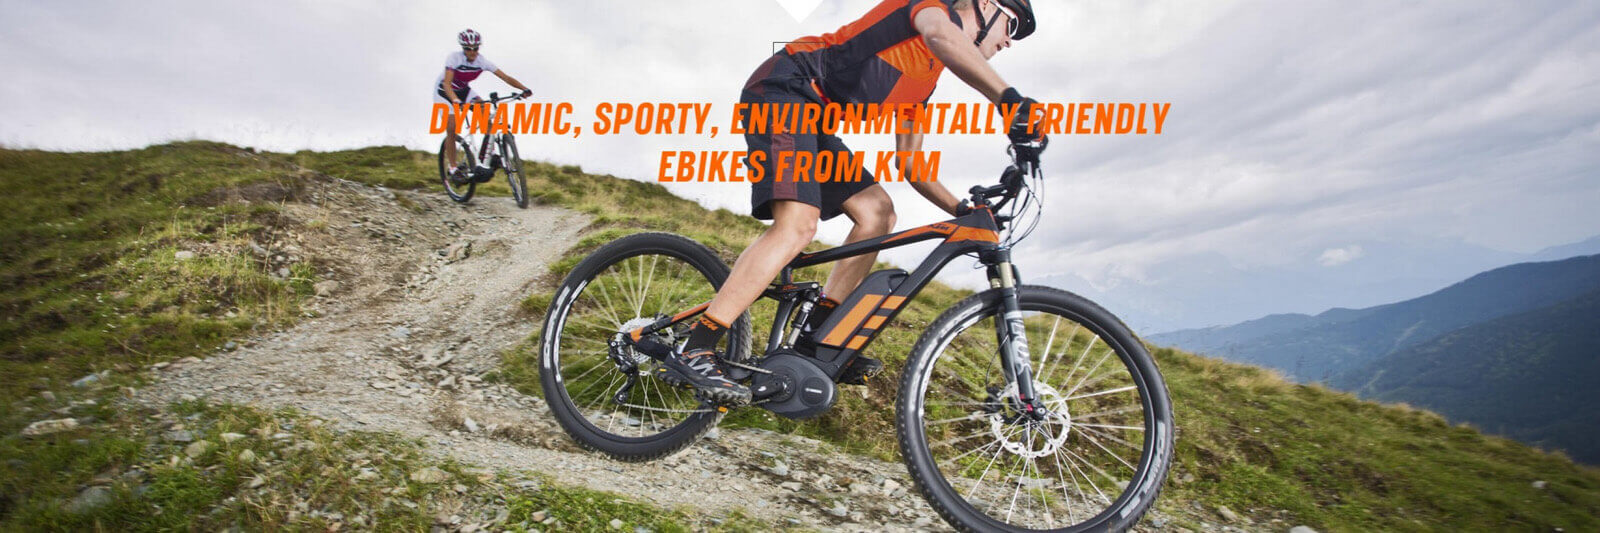 Ktm Bikes 2019 Electric Bikes Cardiff Bike Shop Damian